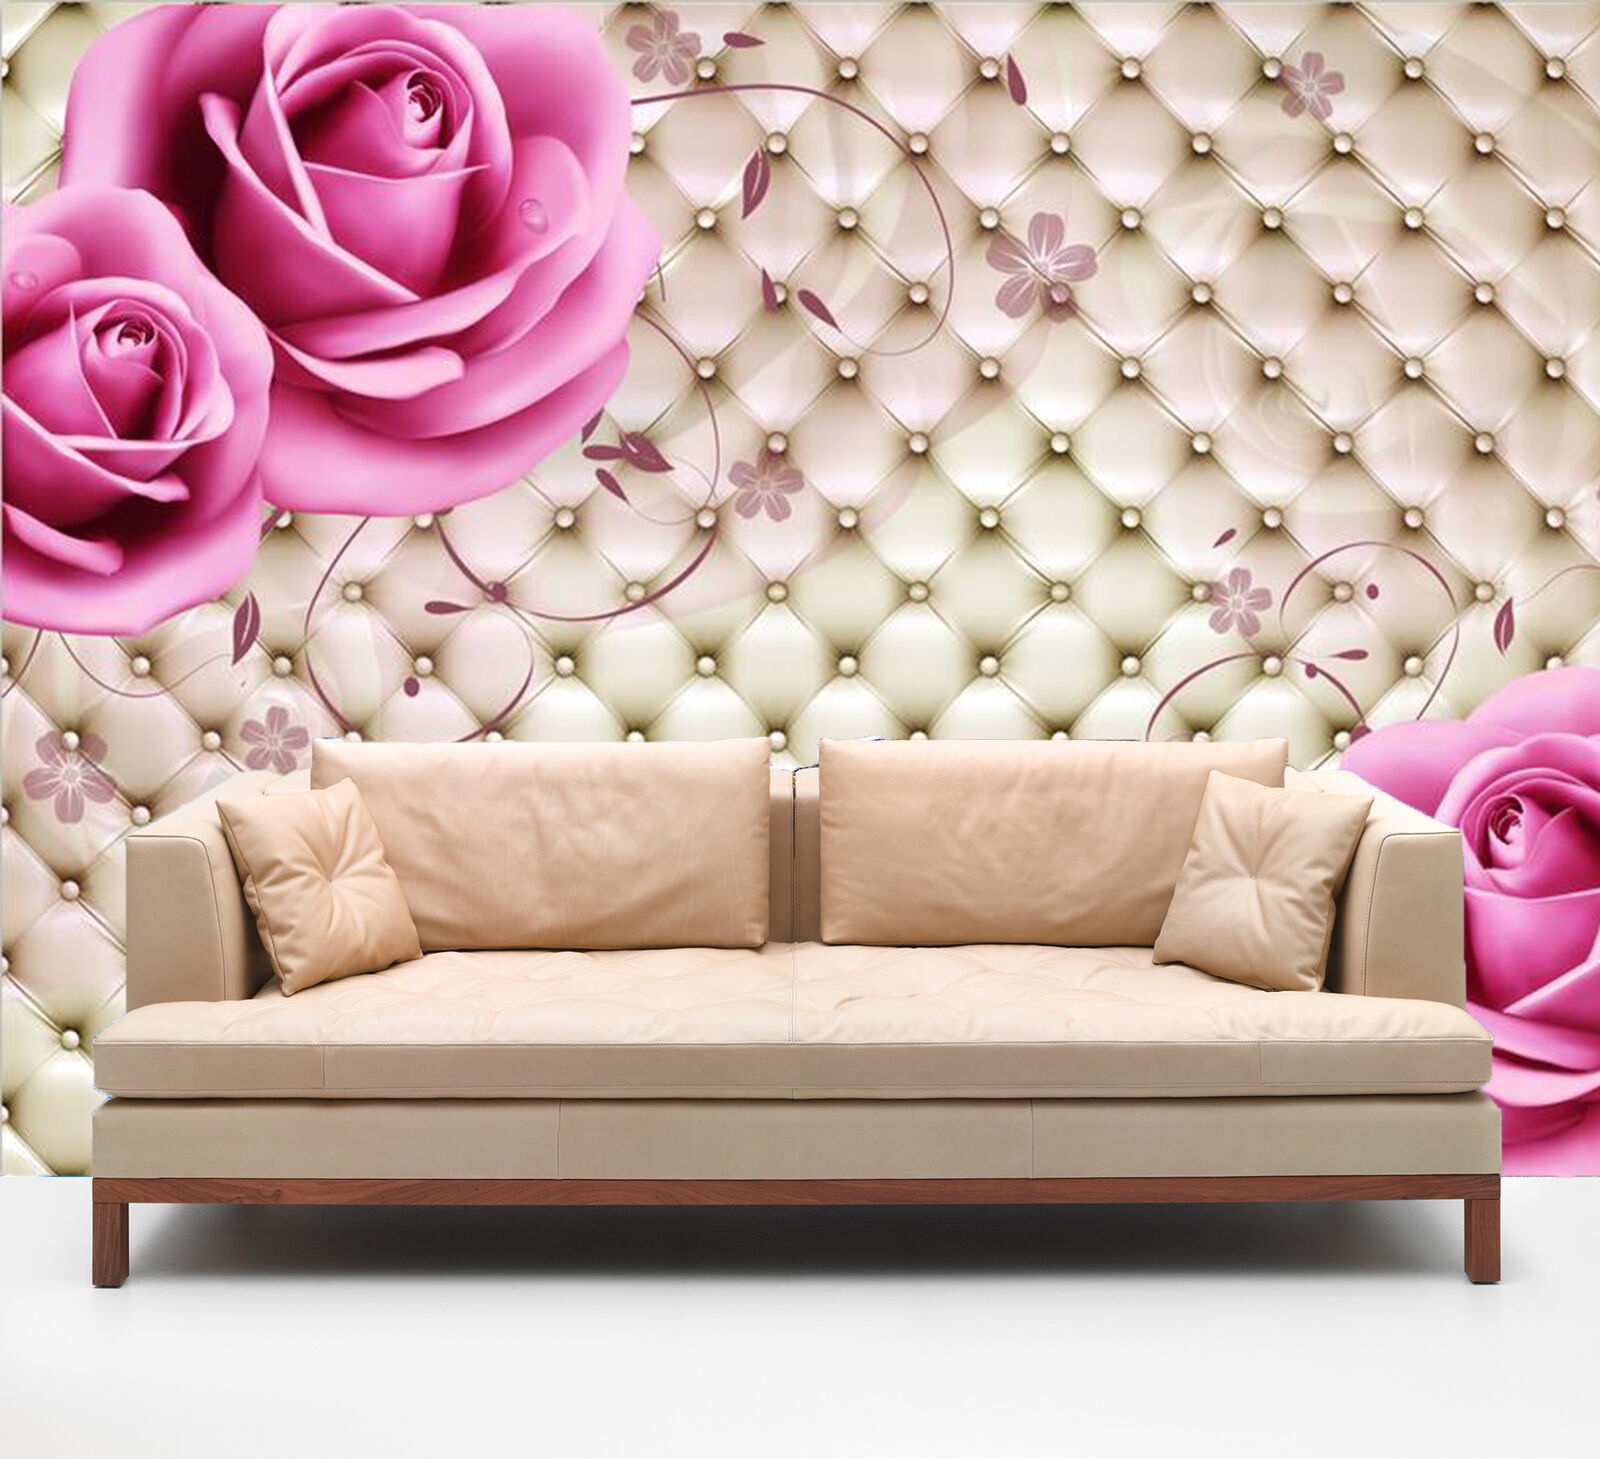 3D Flowers And Leder 1819 Paper Wall Print Wall Decal Wall Deco Indoor Murals